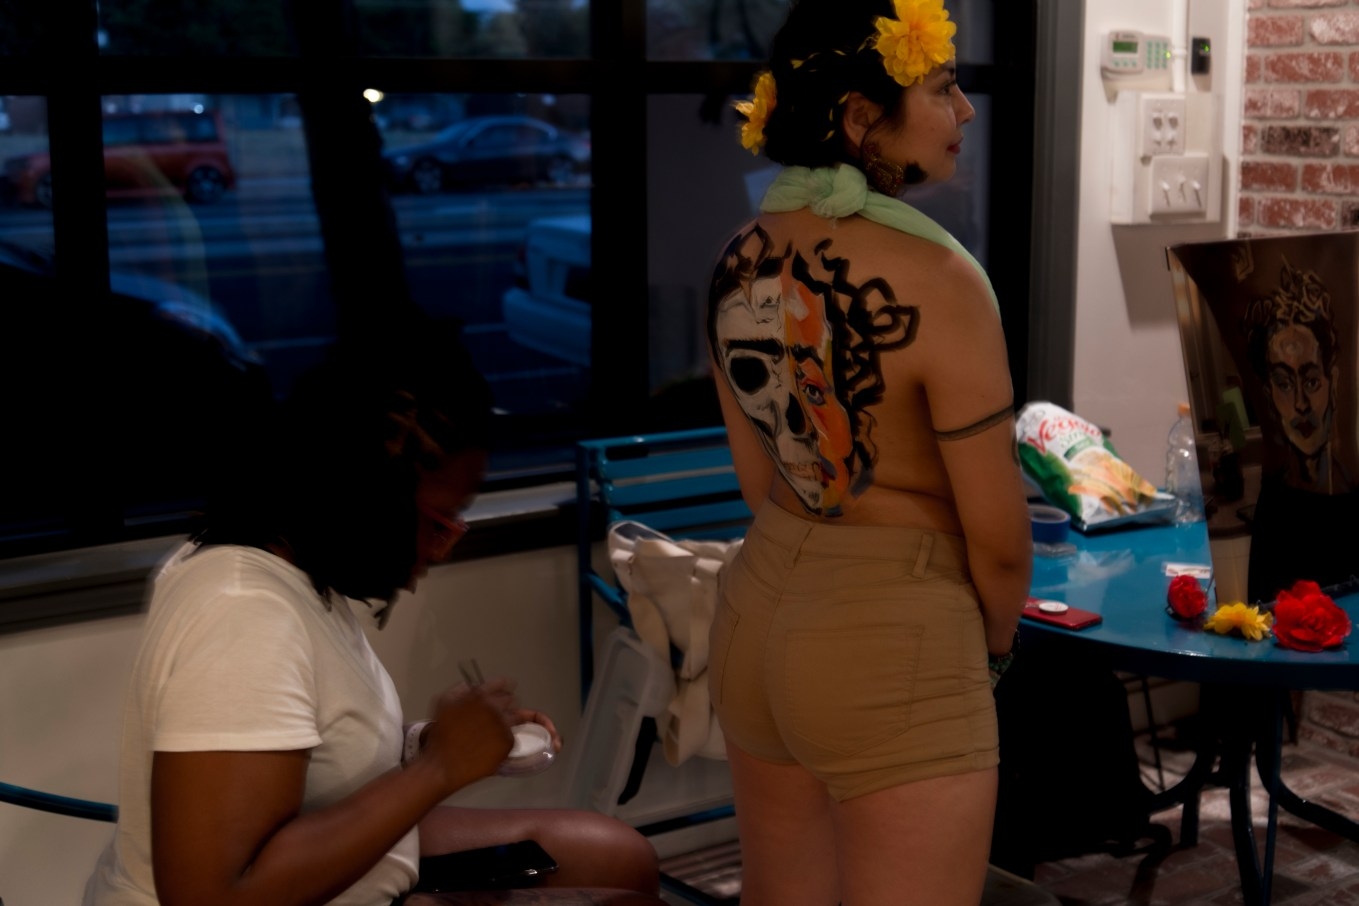 Taneko Chapman body painting at Wounded Deer: A Frida Kahlo inspired art show in Sacramento, CA, July 6, 2018. Photo by Emma Montalbano.